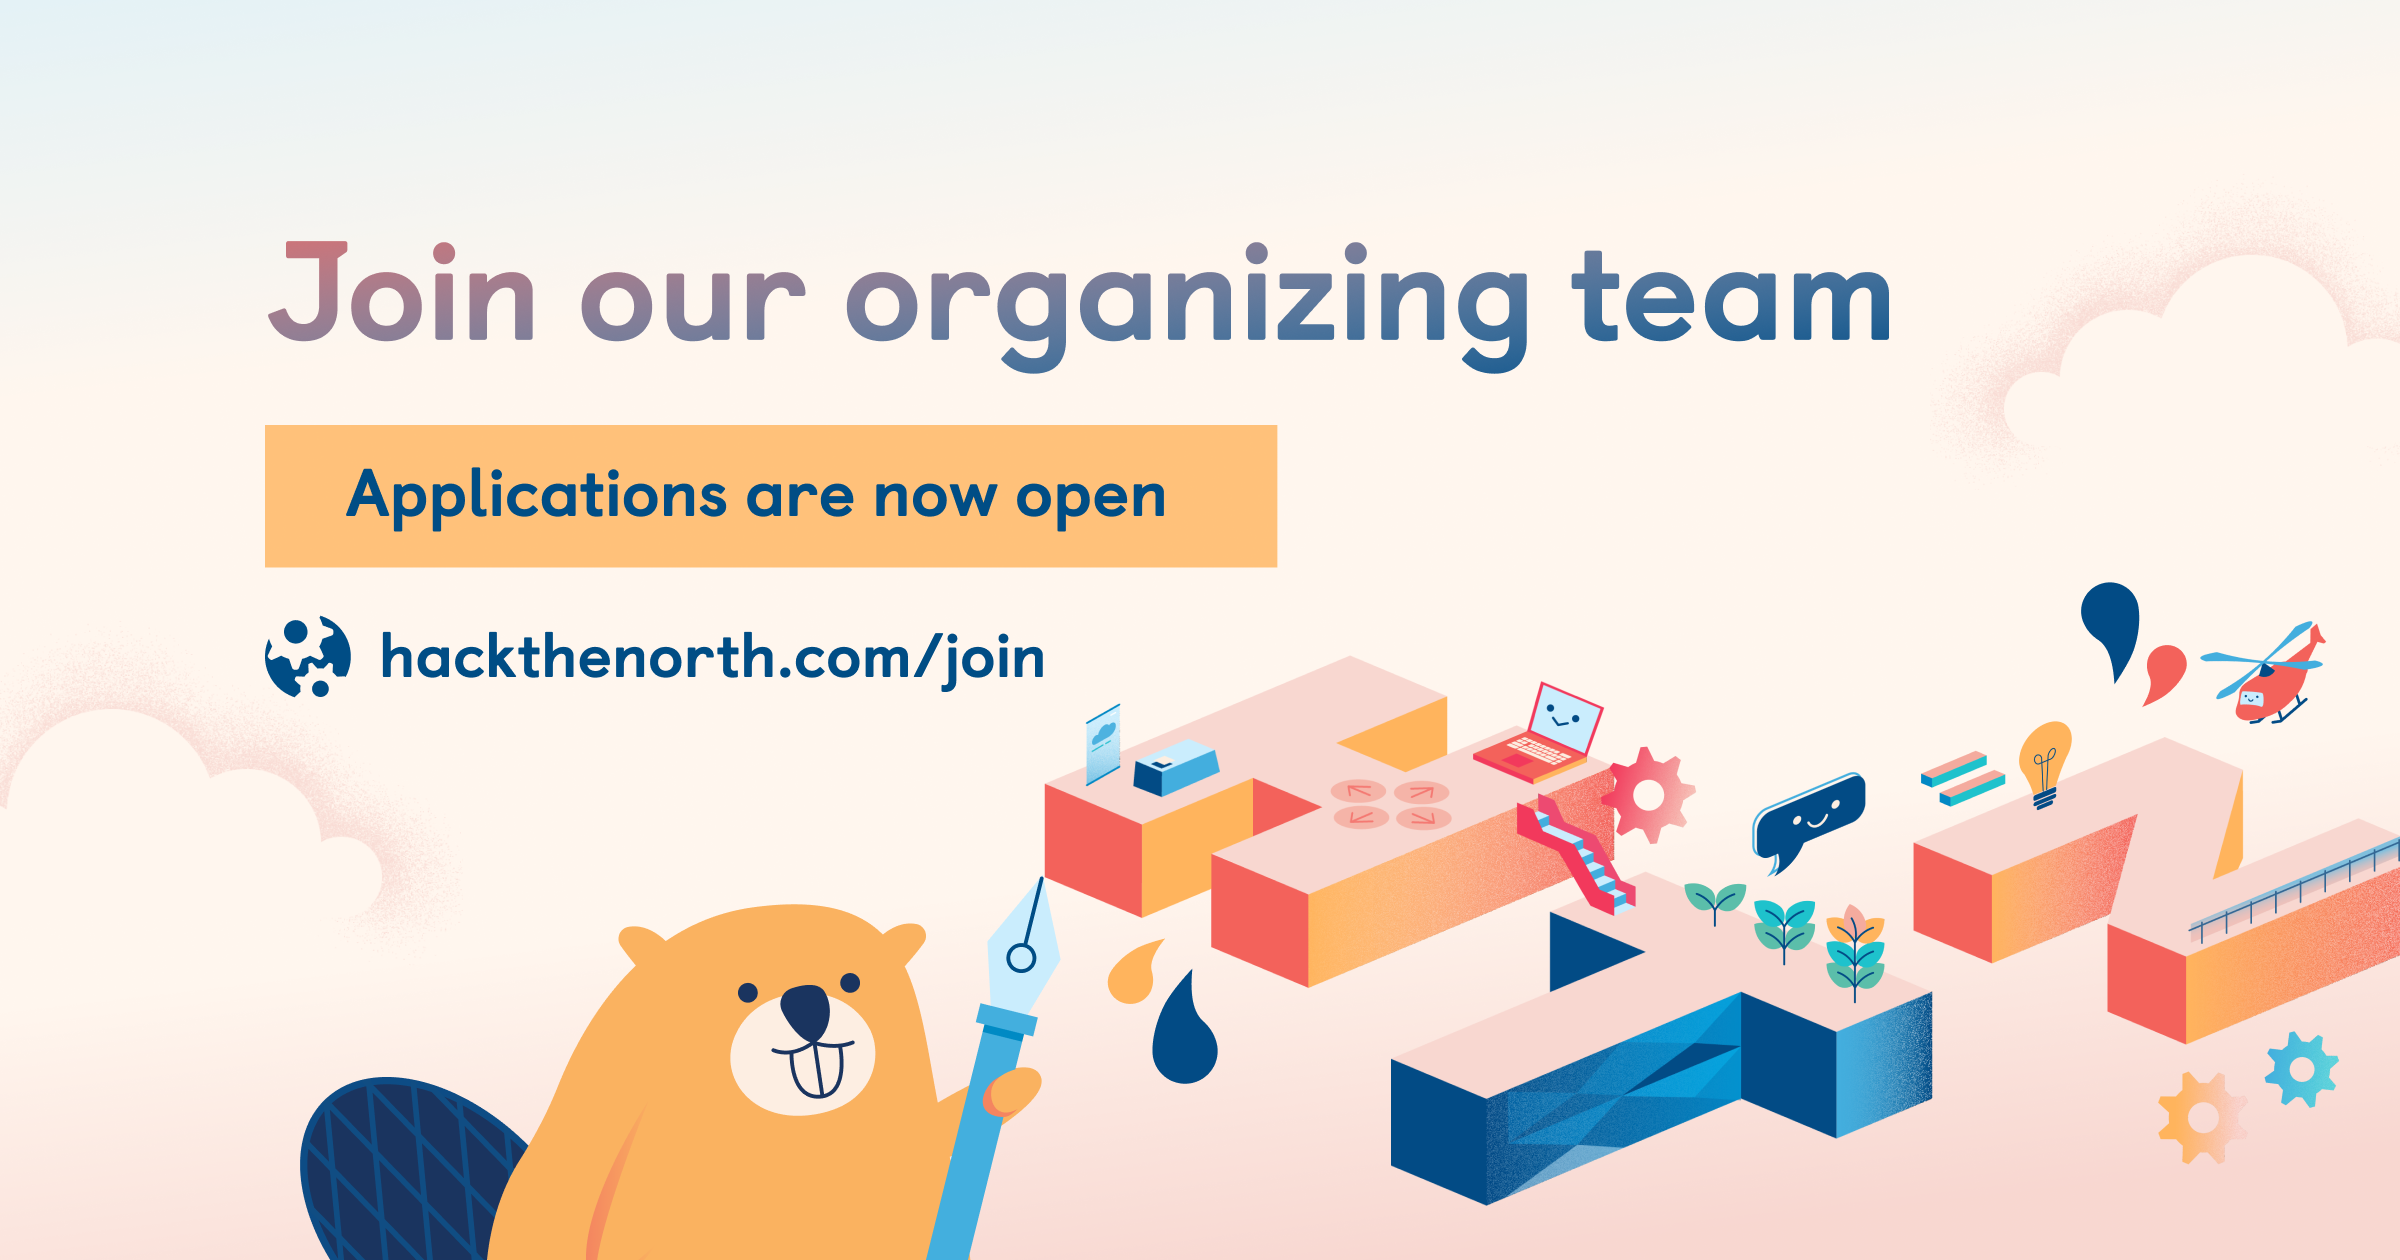 join our organizing team appications are now open hackthenorth.com/join